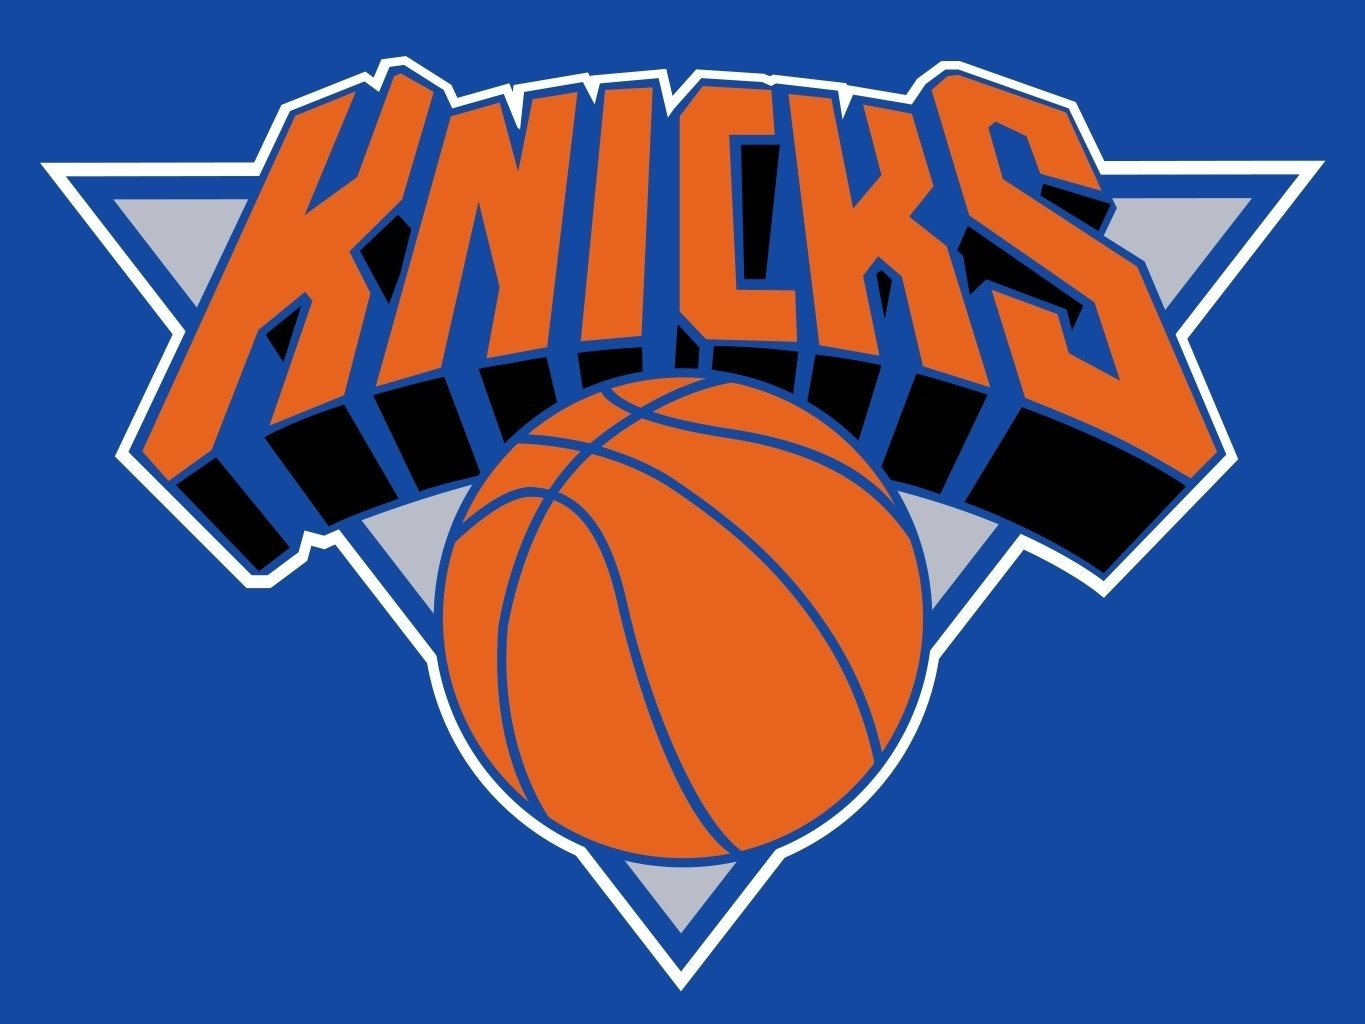 New York Knicks Wallpaper and Background 1365x1024 ID192280